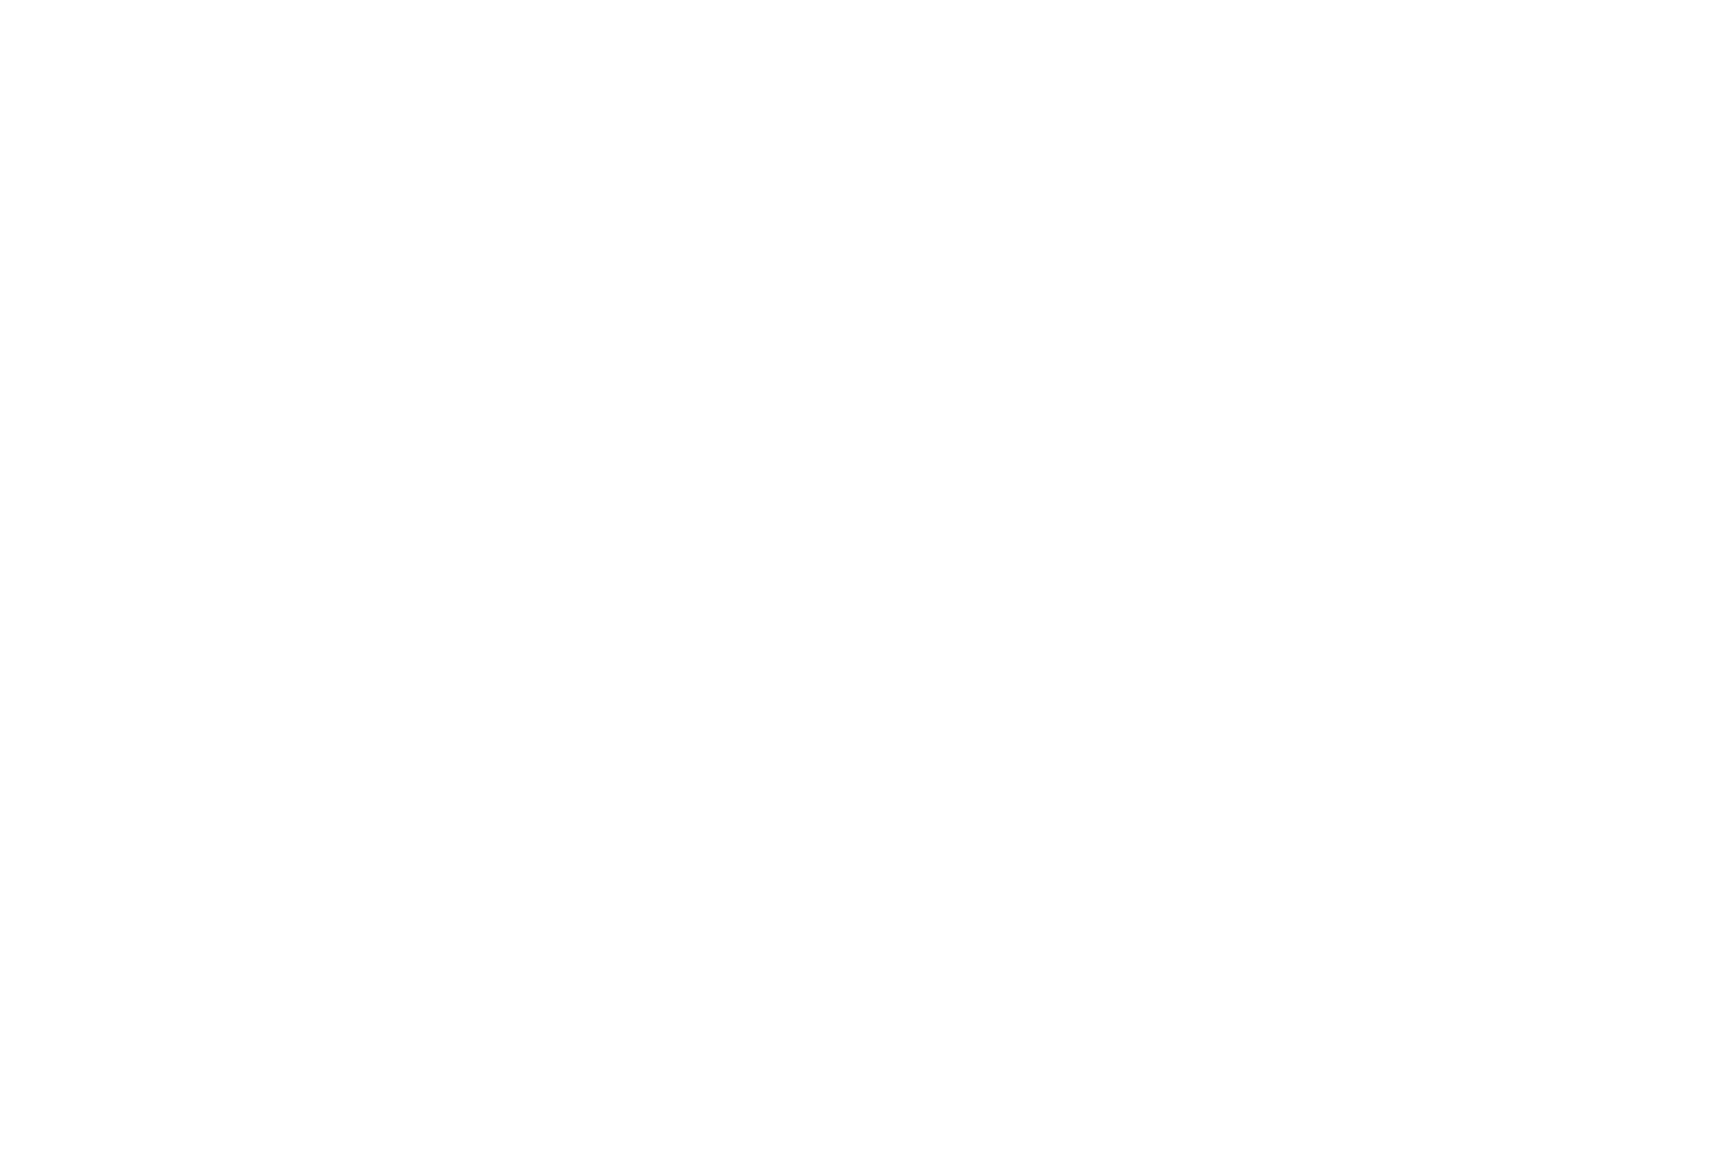 OFFICIAL SELECTION - Newark IFF Youth Festival - 2021